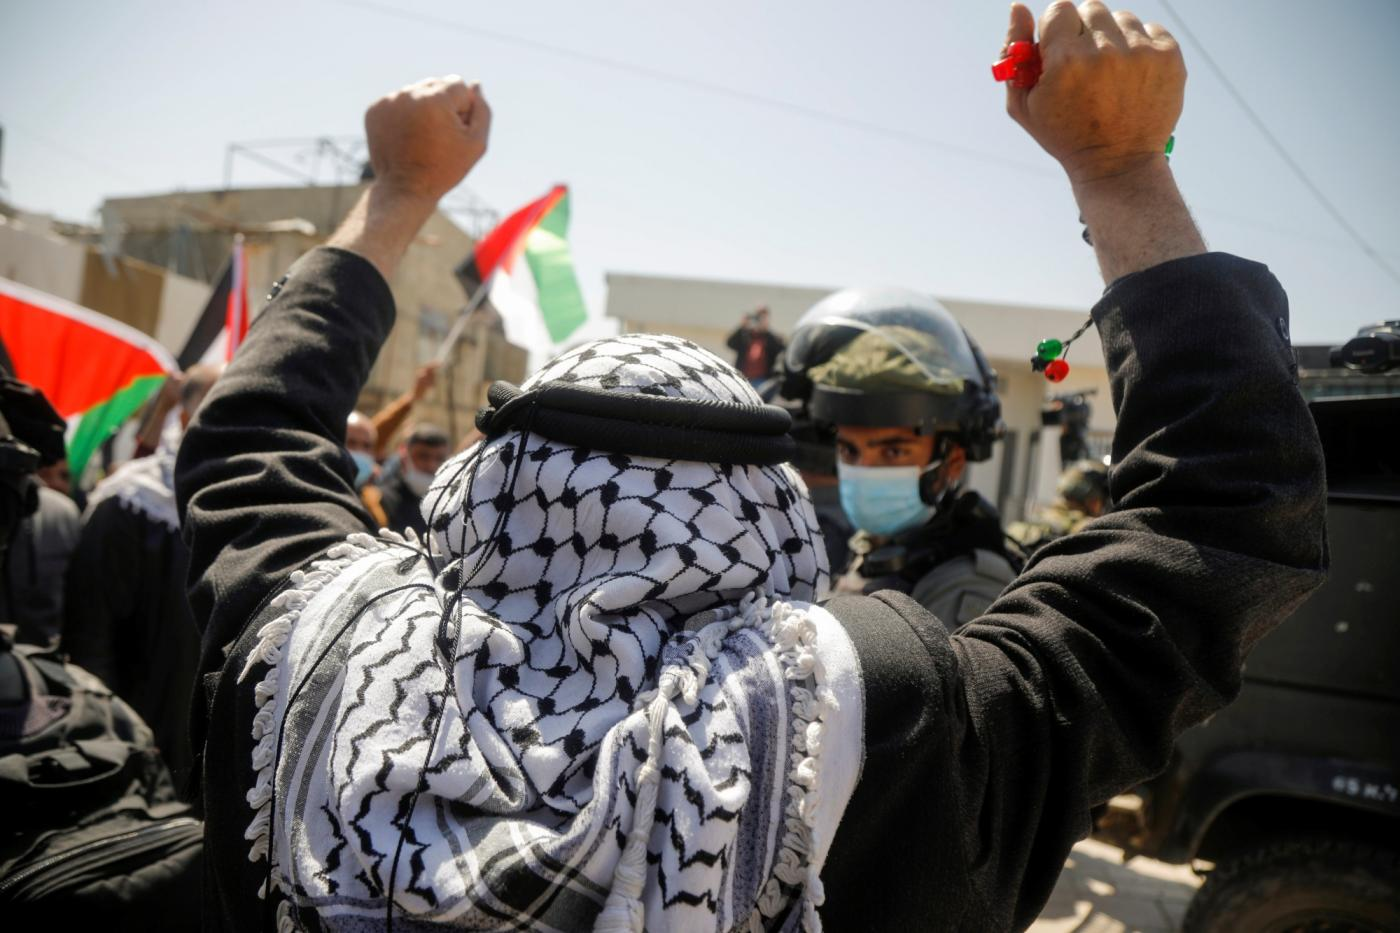 Land Day anniversary: Thousands demonstrate across Israel, Gaza, West Bank  | Middle East Eye